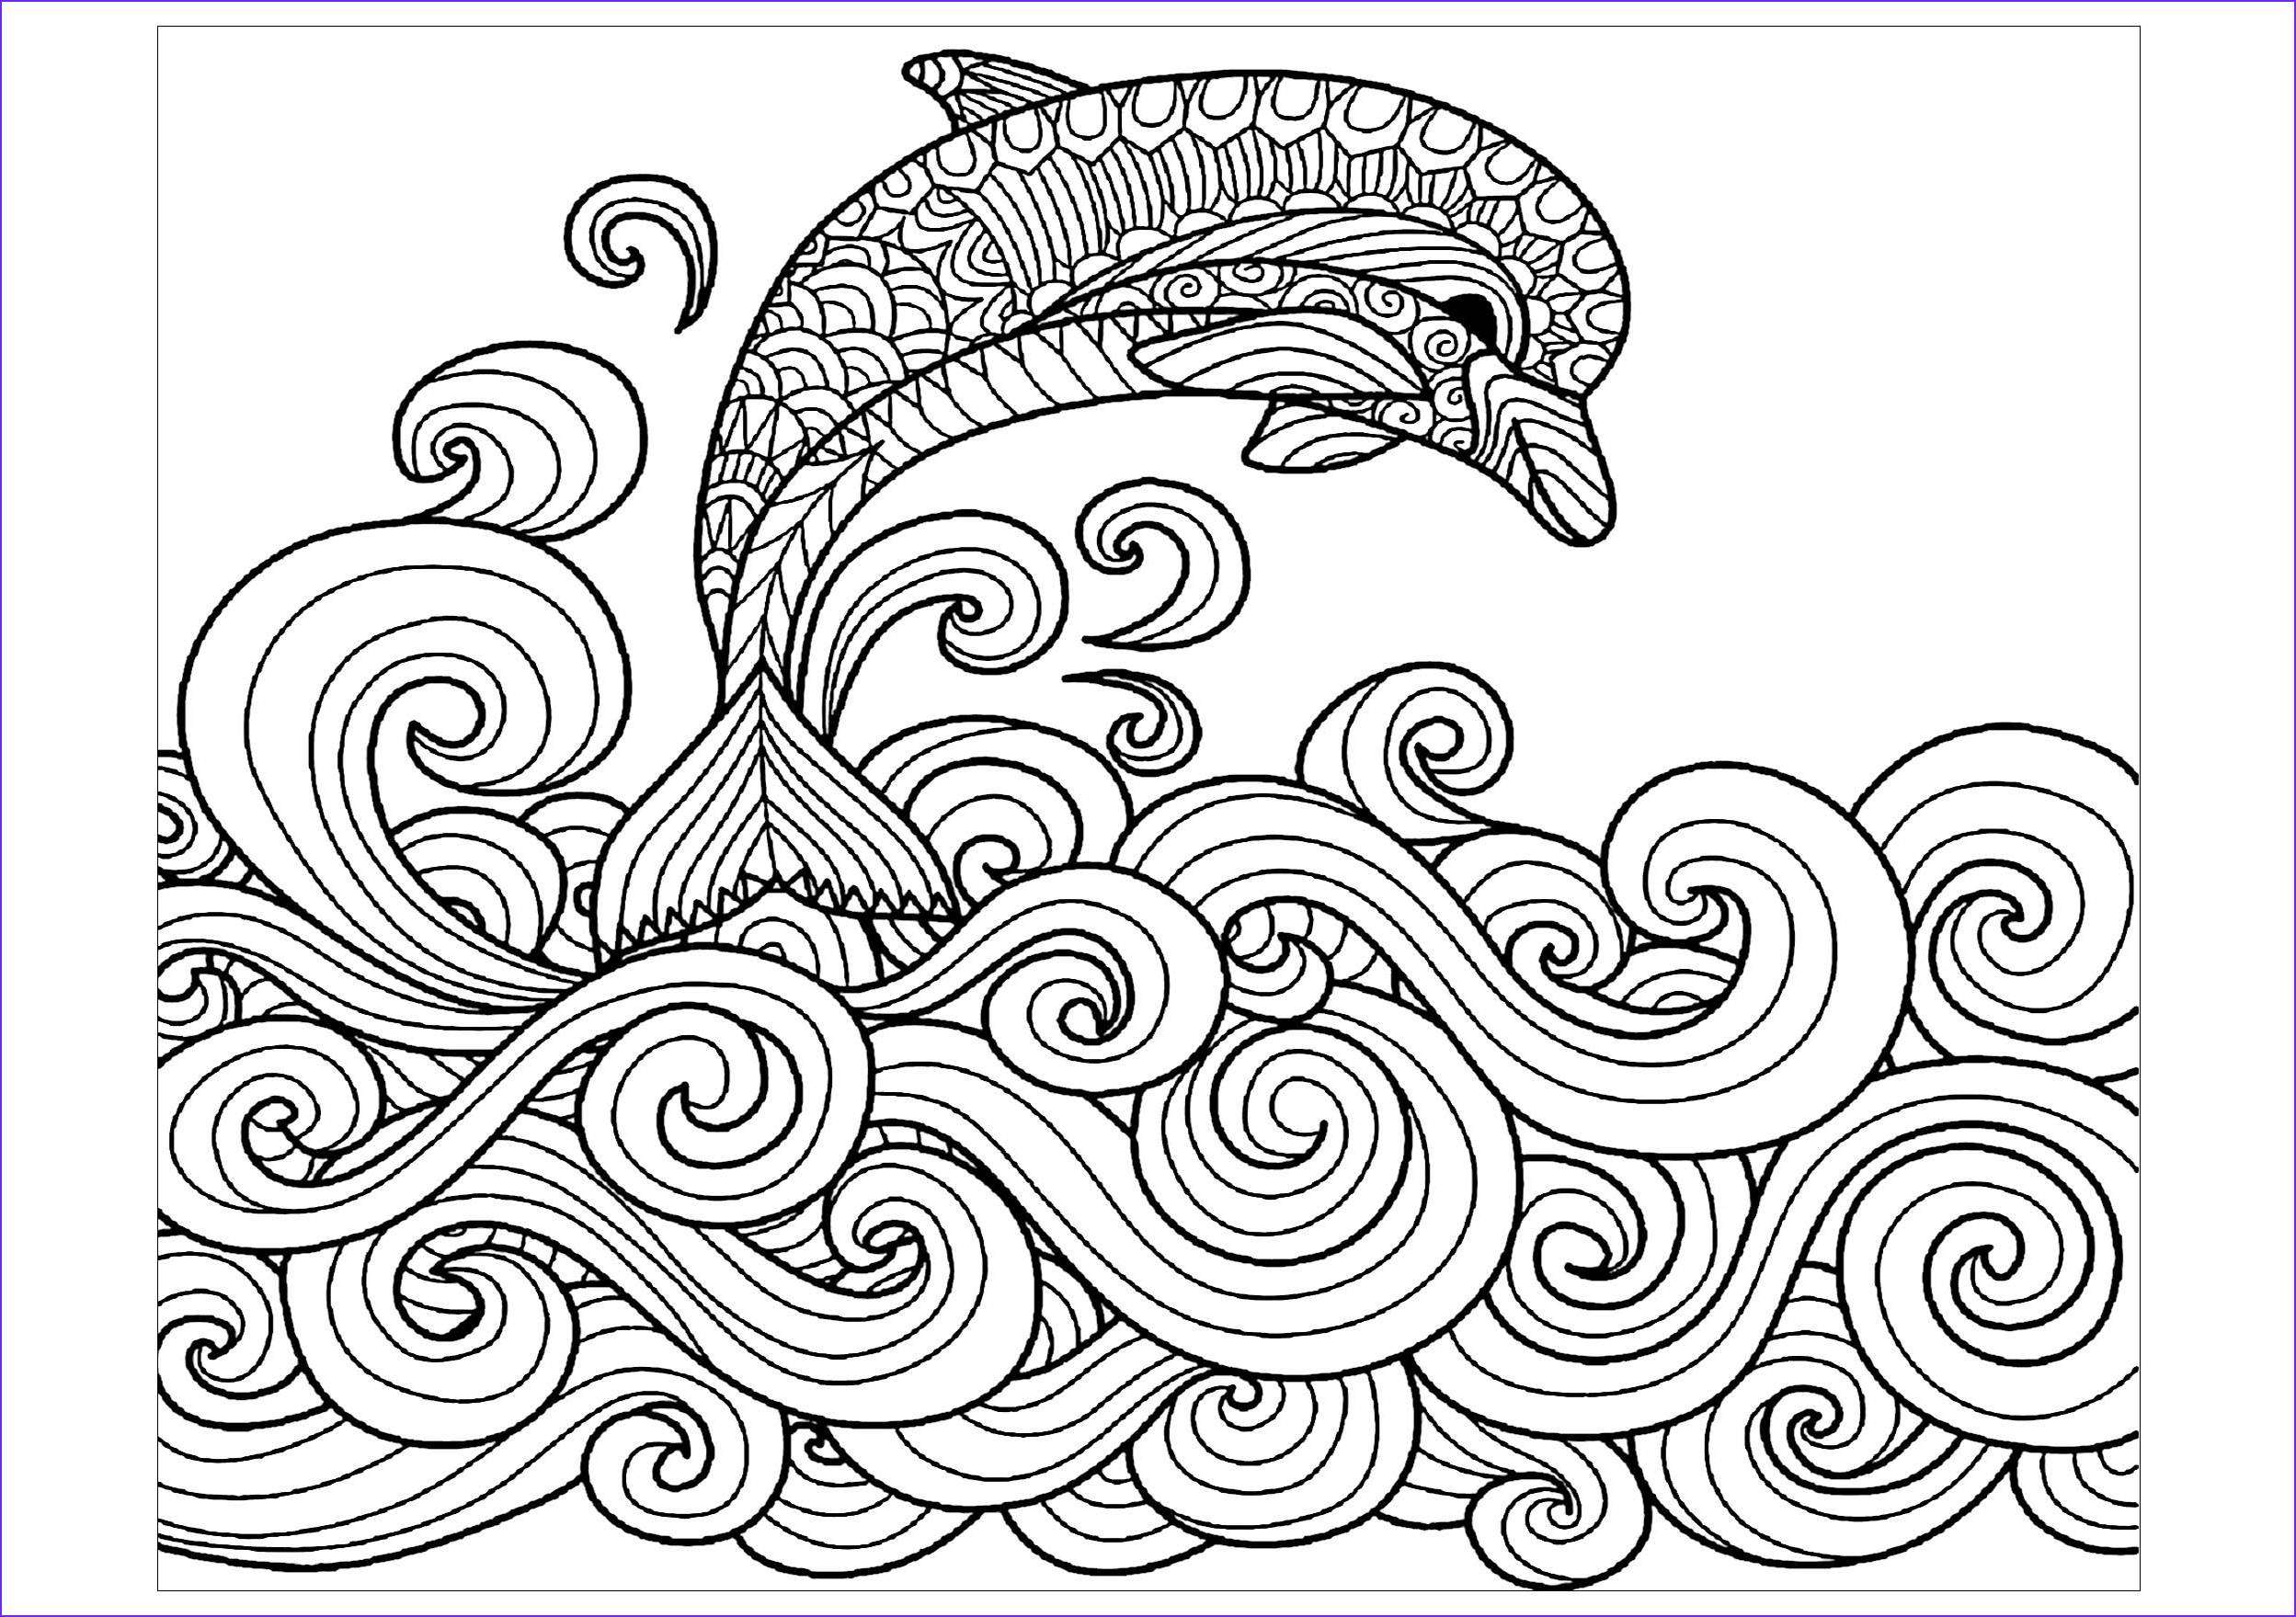 Dolphin Coloring Book Beautiful Image Dolphin Waves Dolphins Adult Coloring Pages